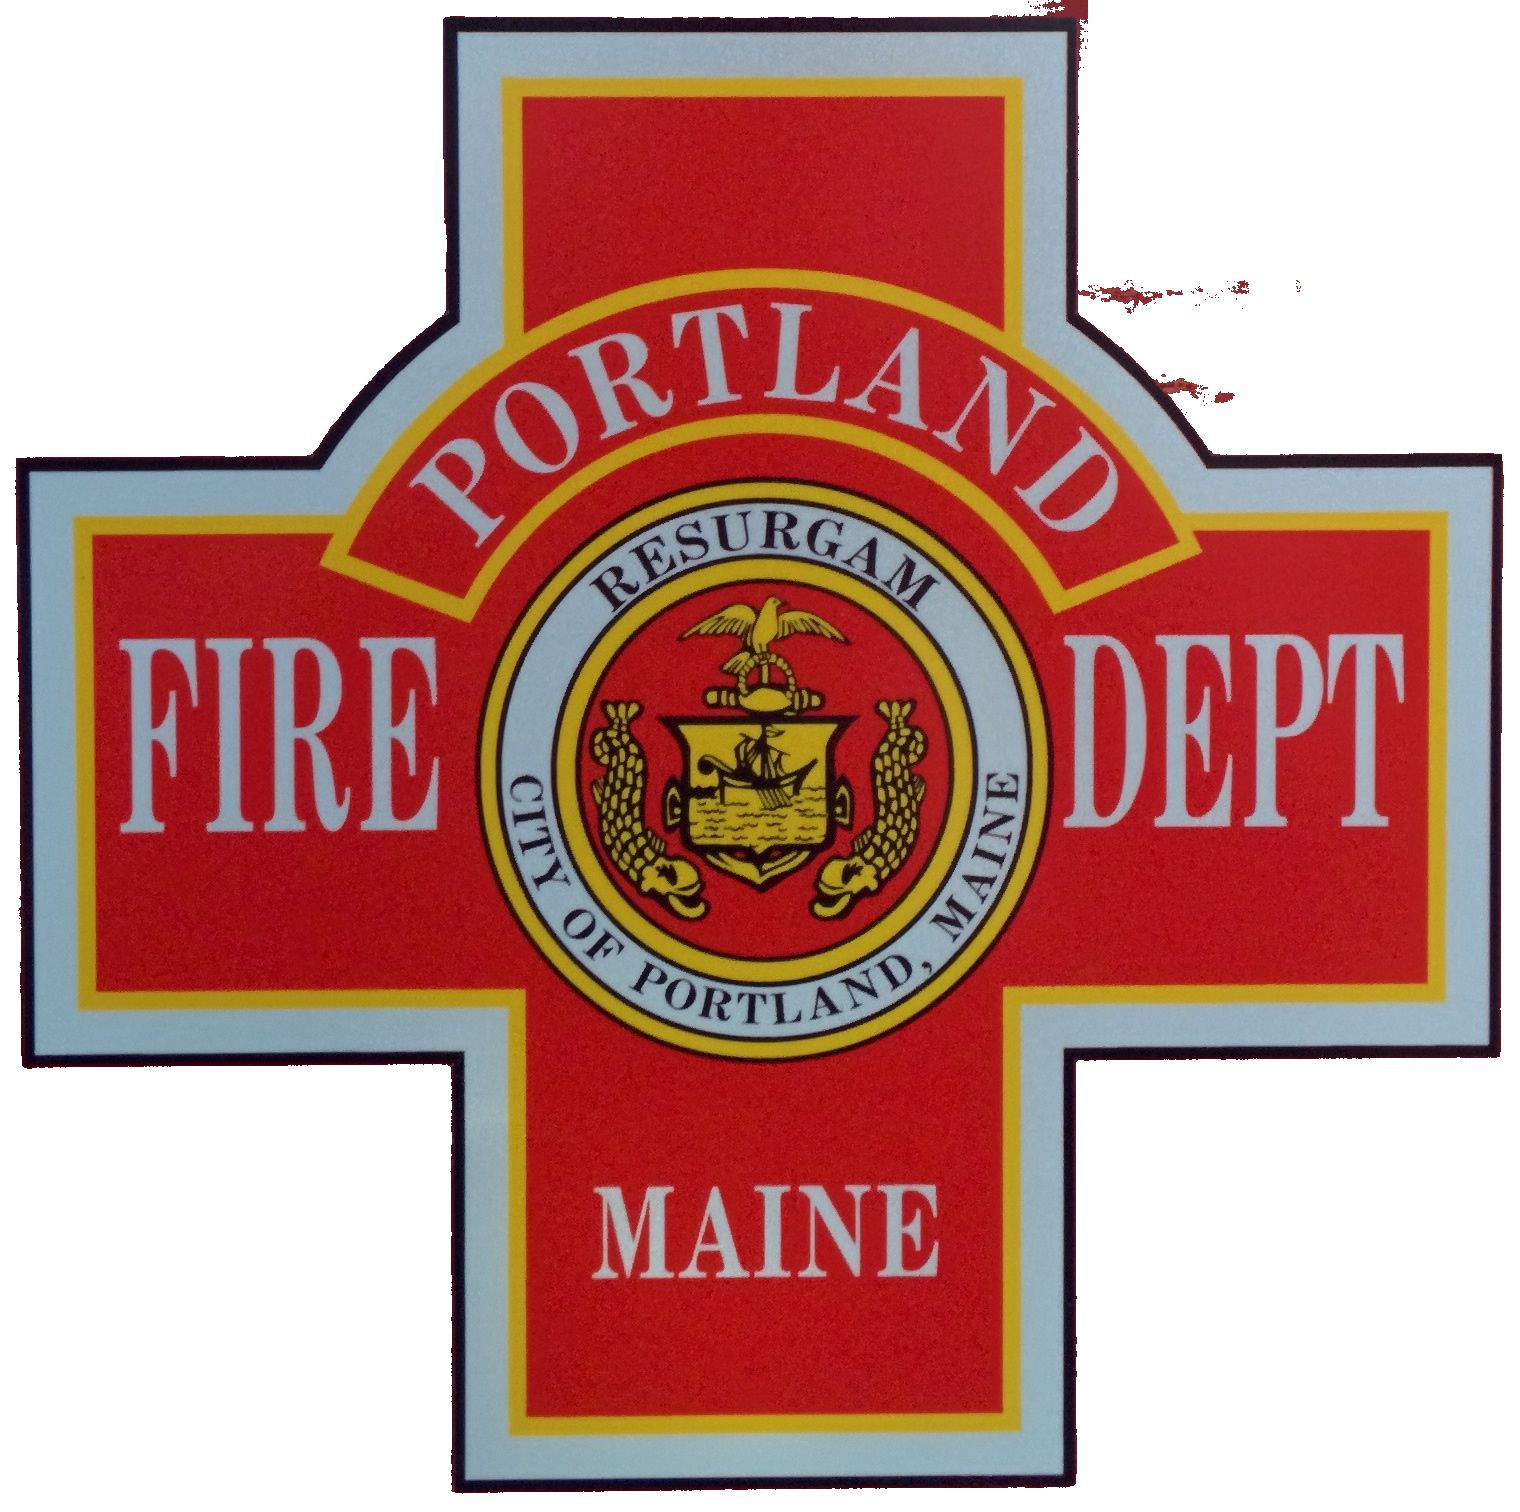 Portland Fire Department Logo (With images) Fire